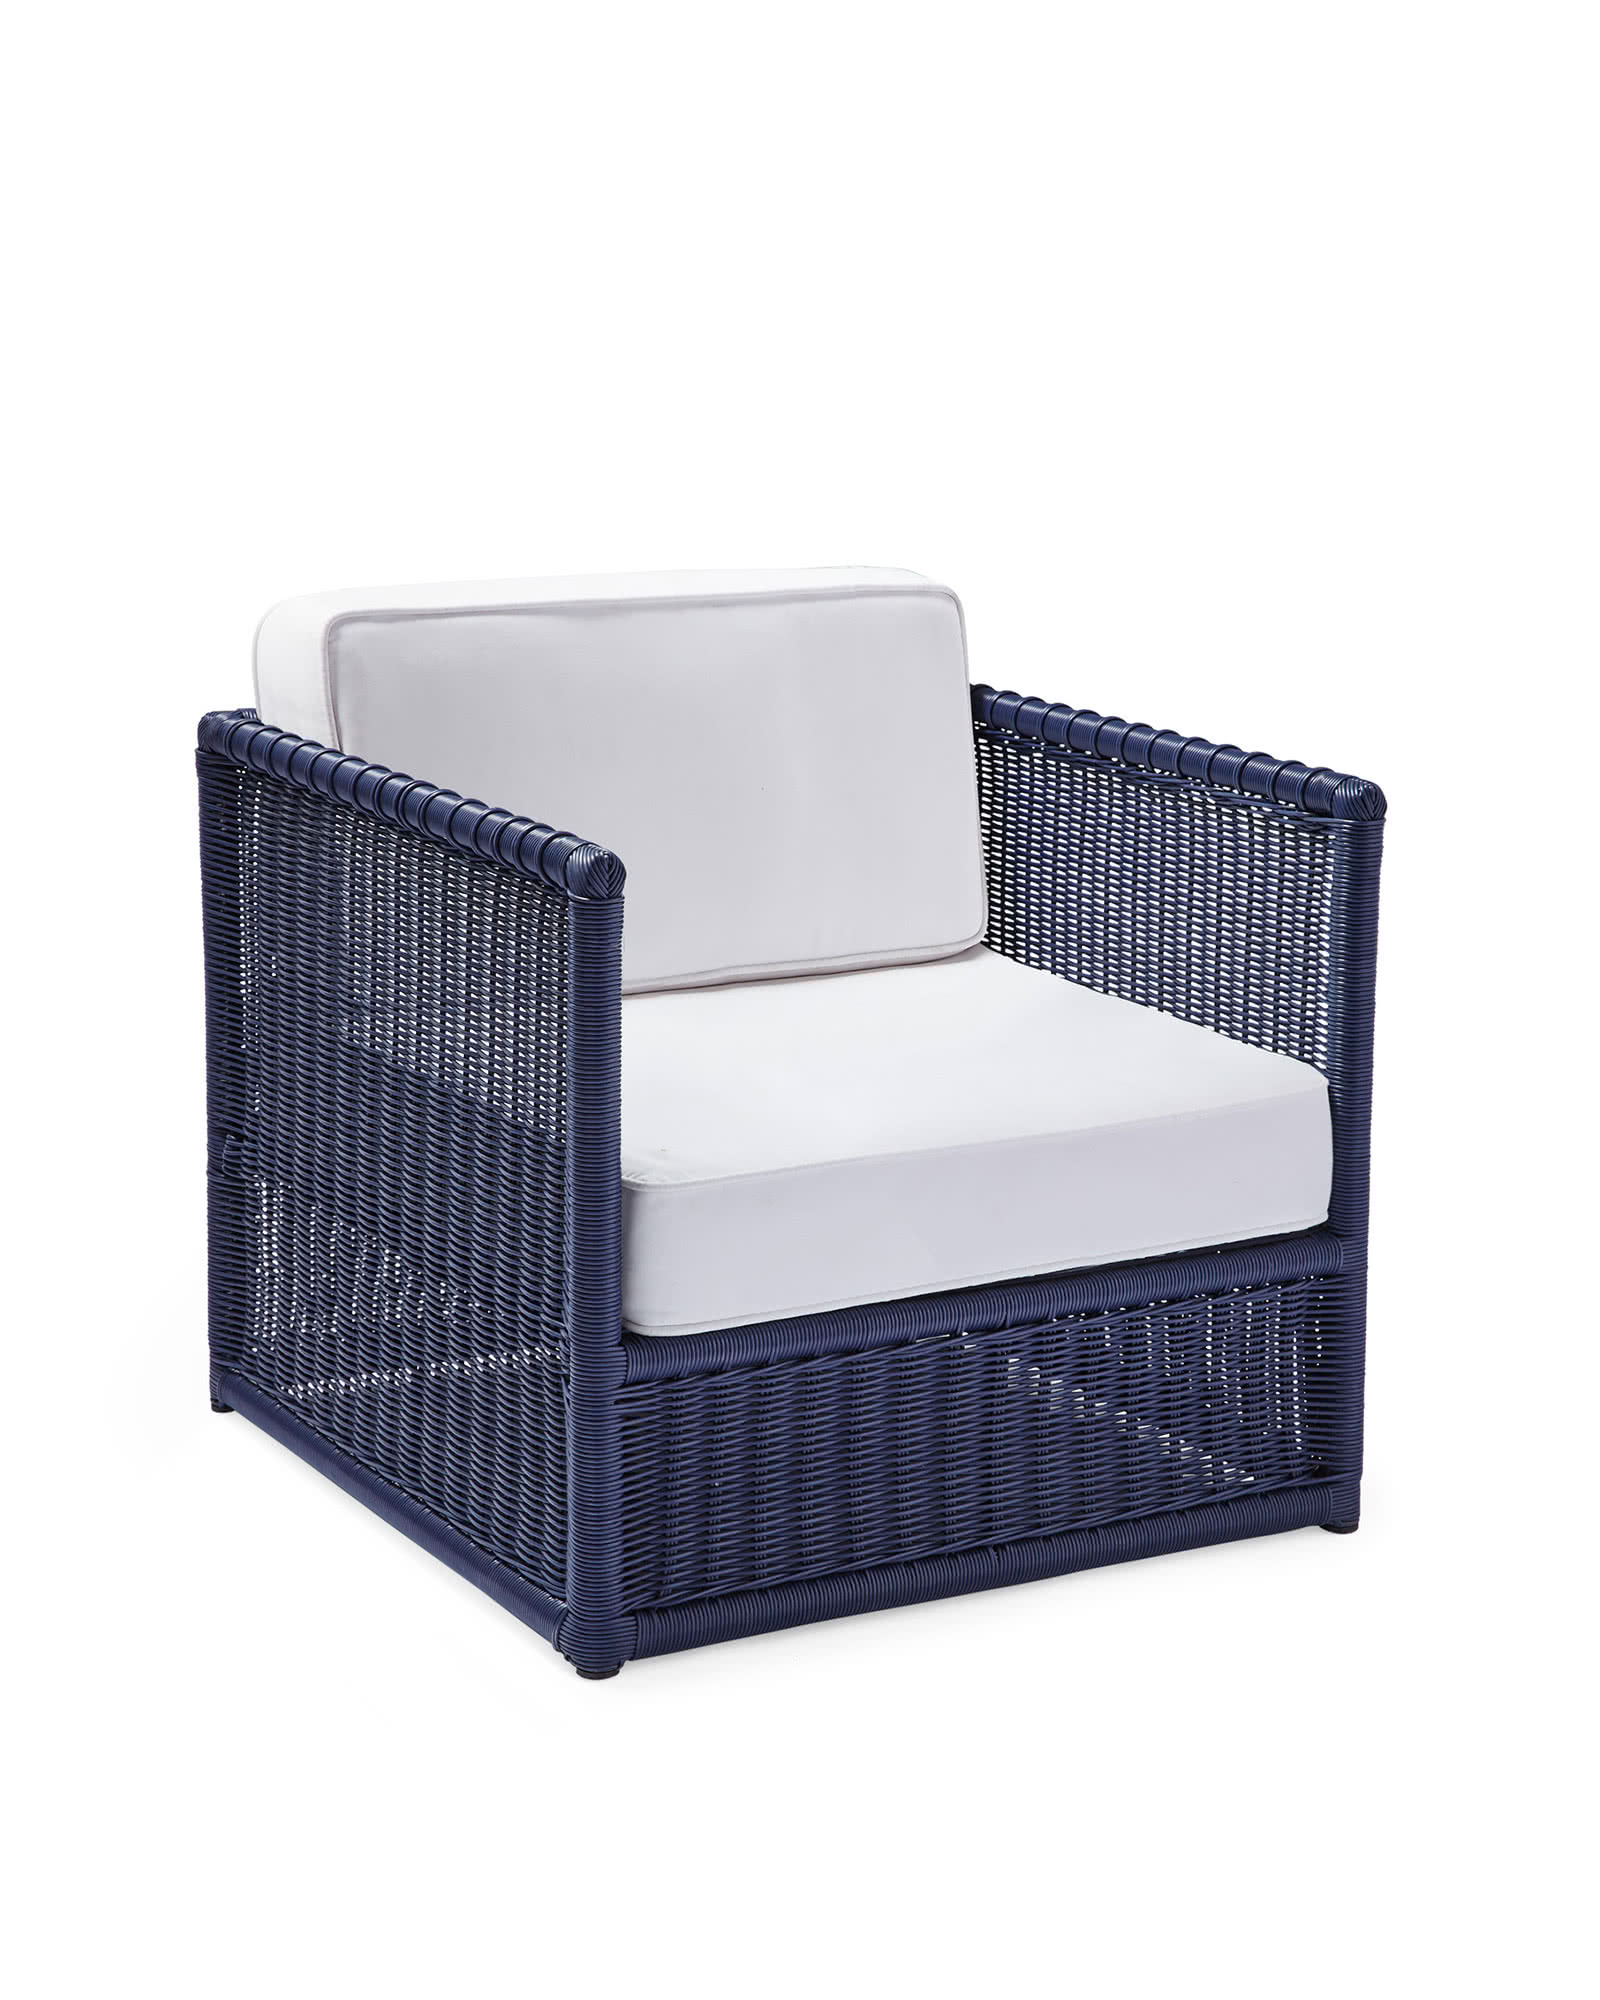 Pacifica Chair Navy Serena & Lily